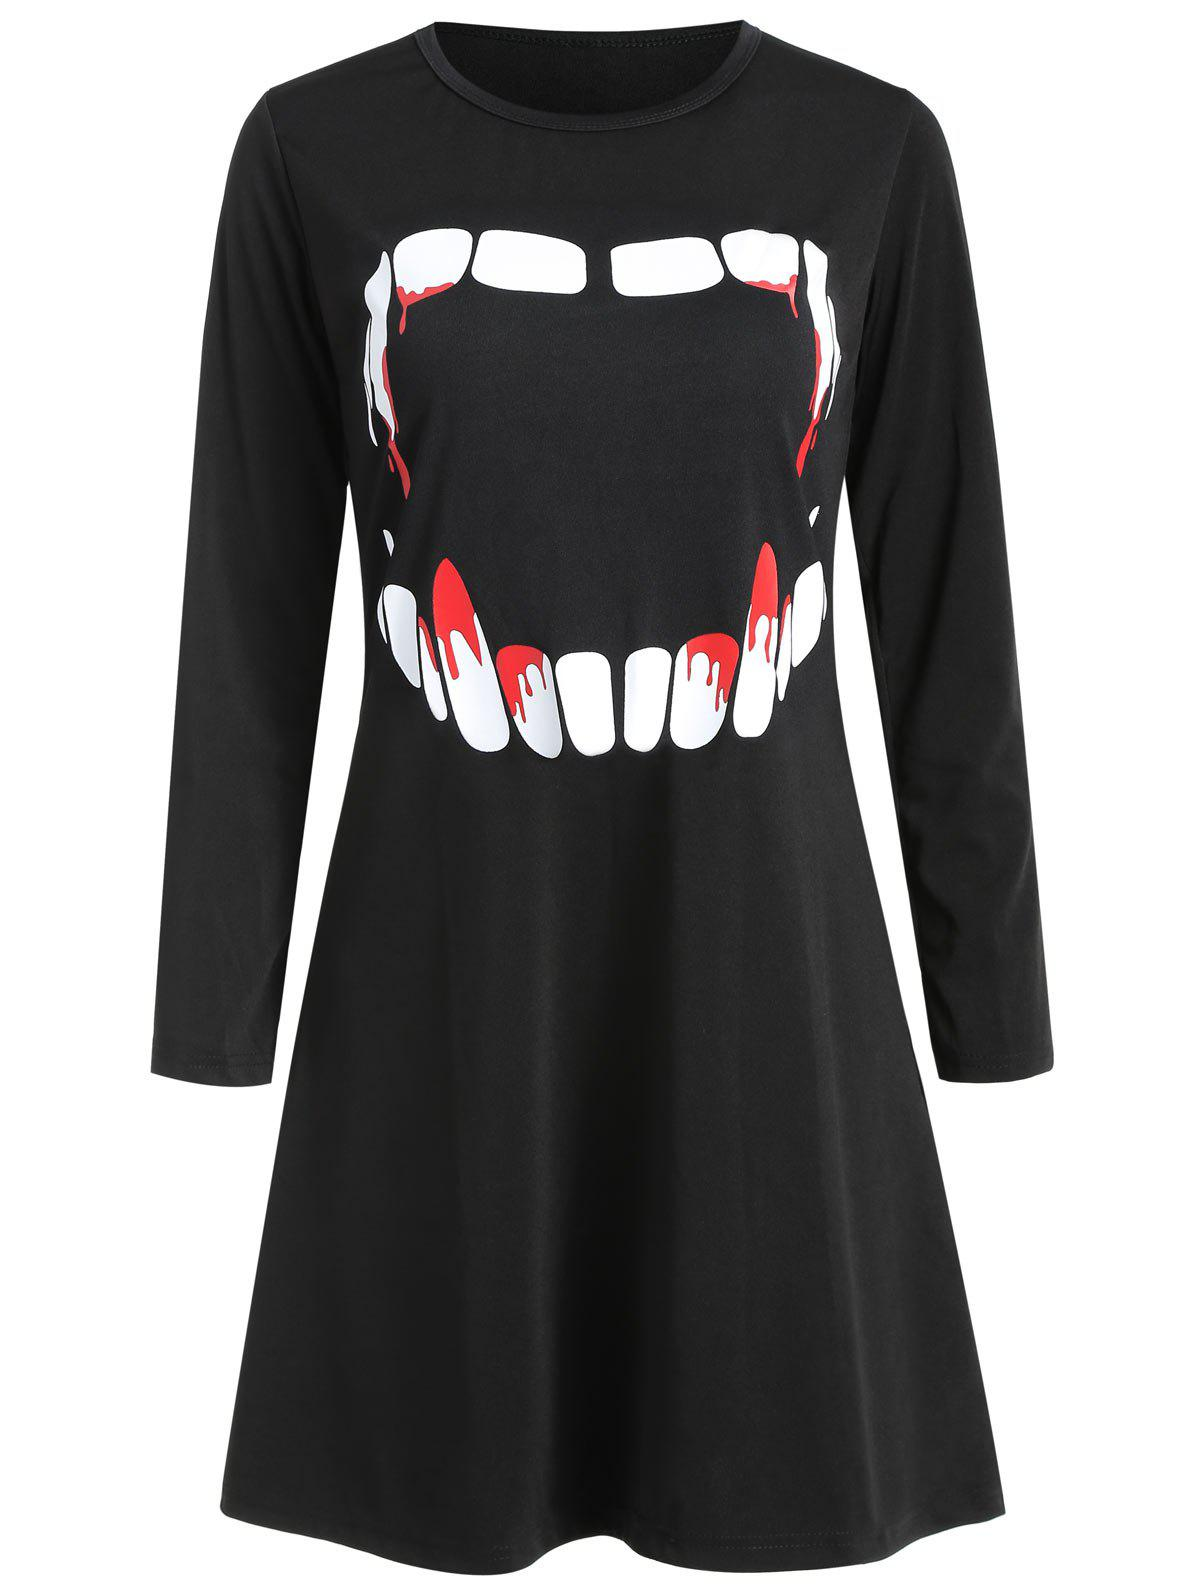 Outfits Women's Round Neck Long Sleeve Halloween Printing A-line Dress